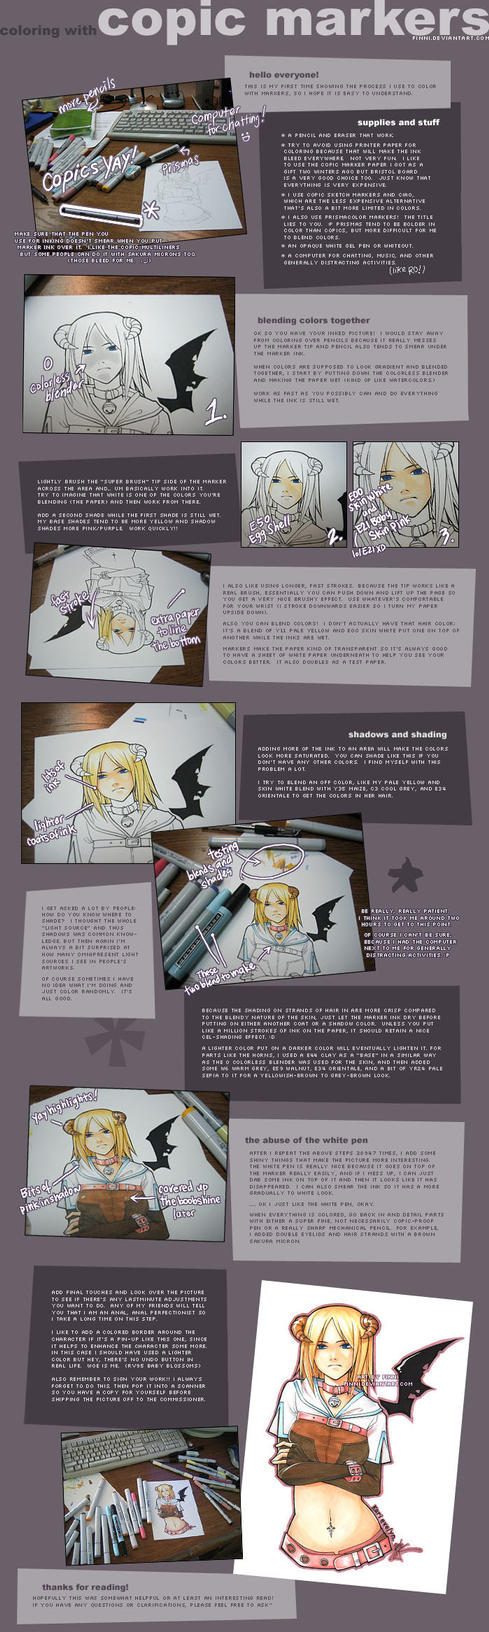 Copic Marker Tutorial by finni